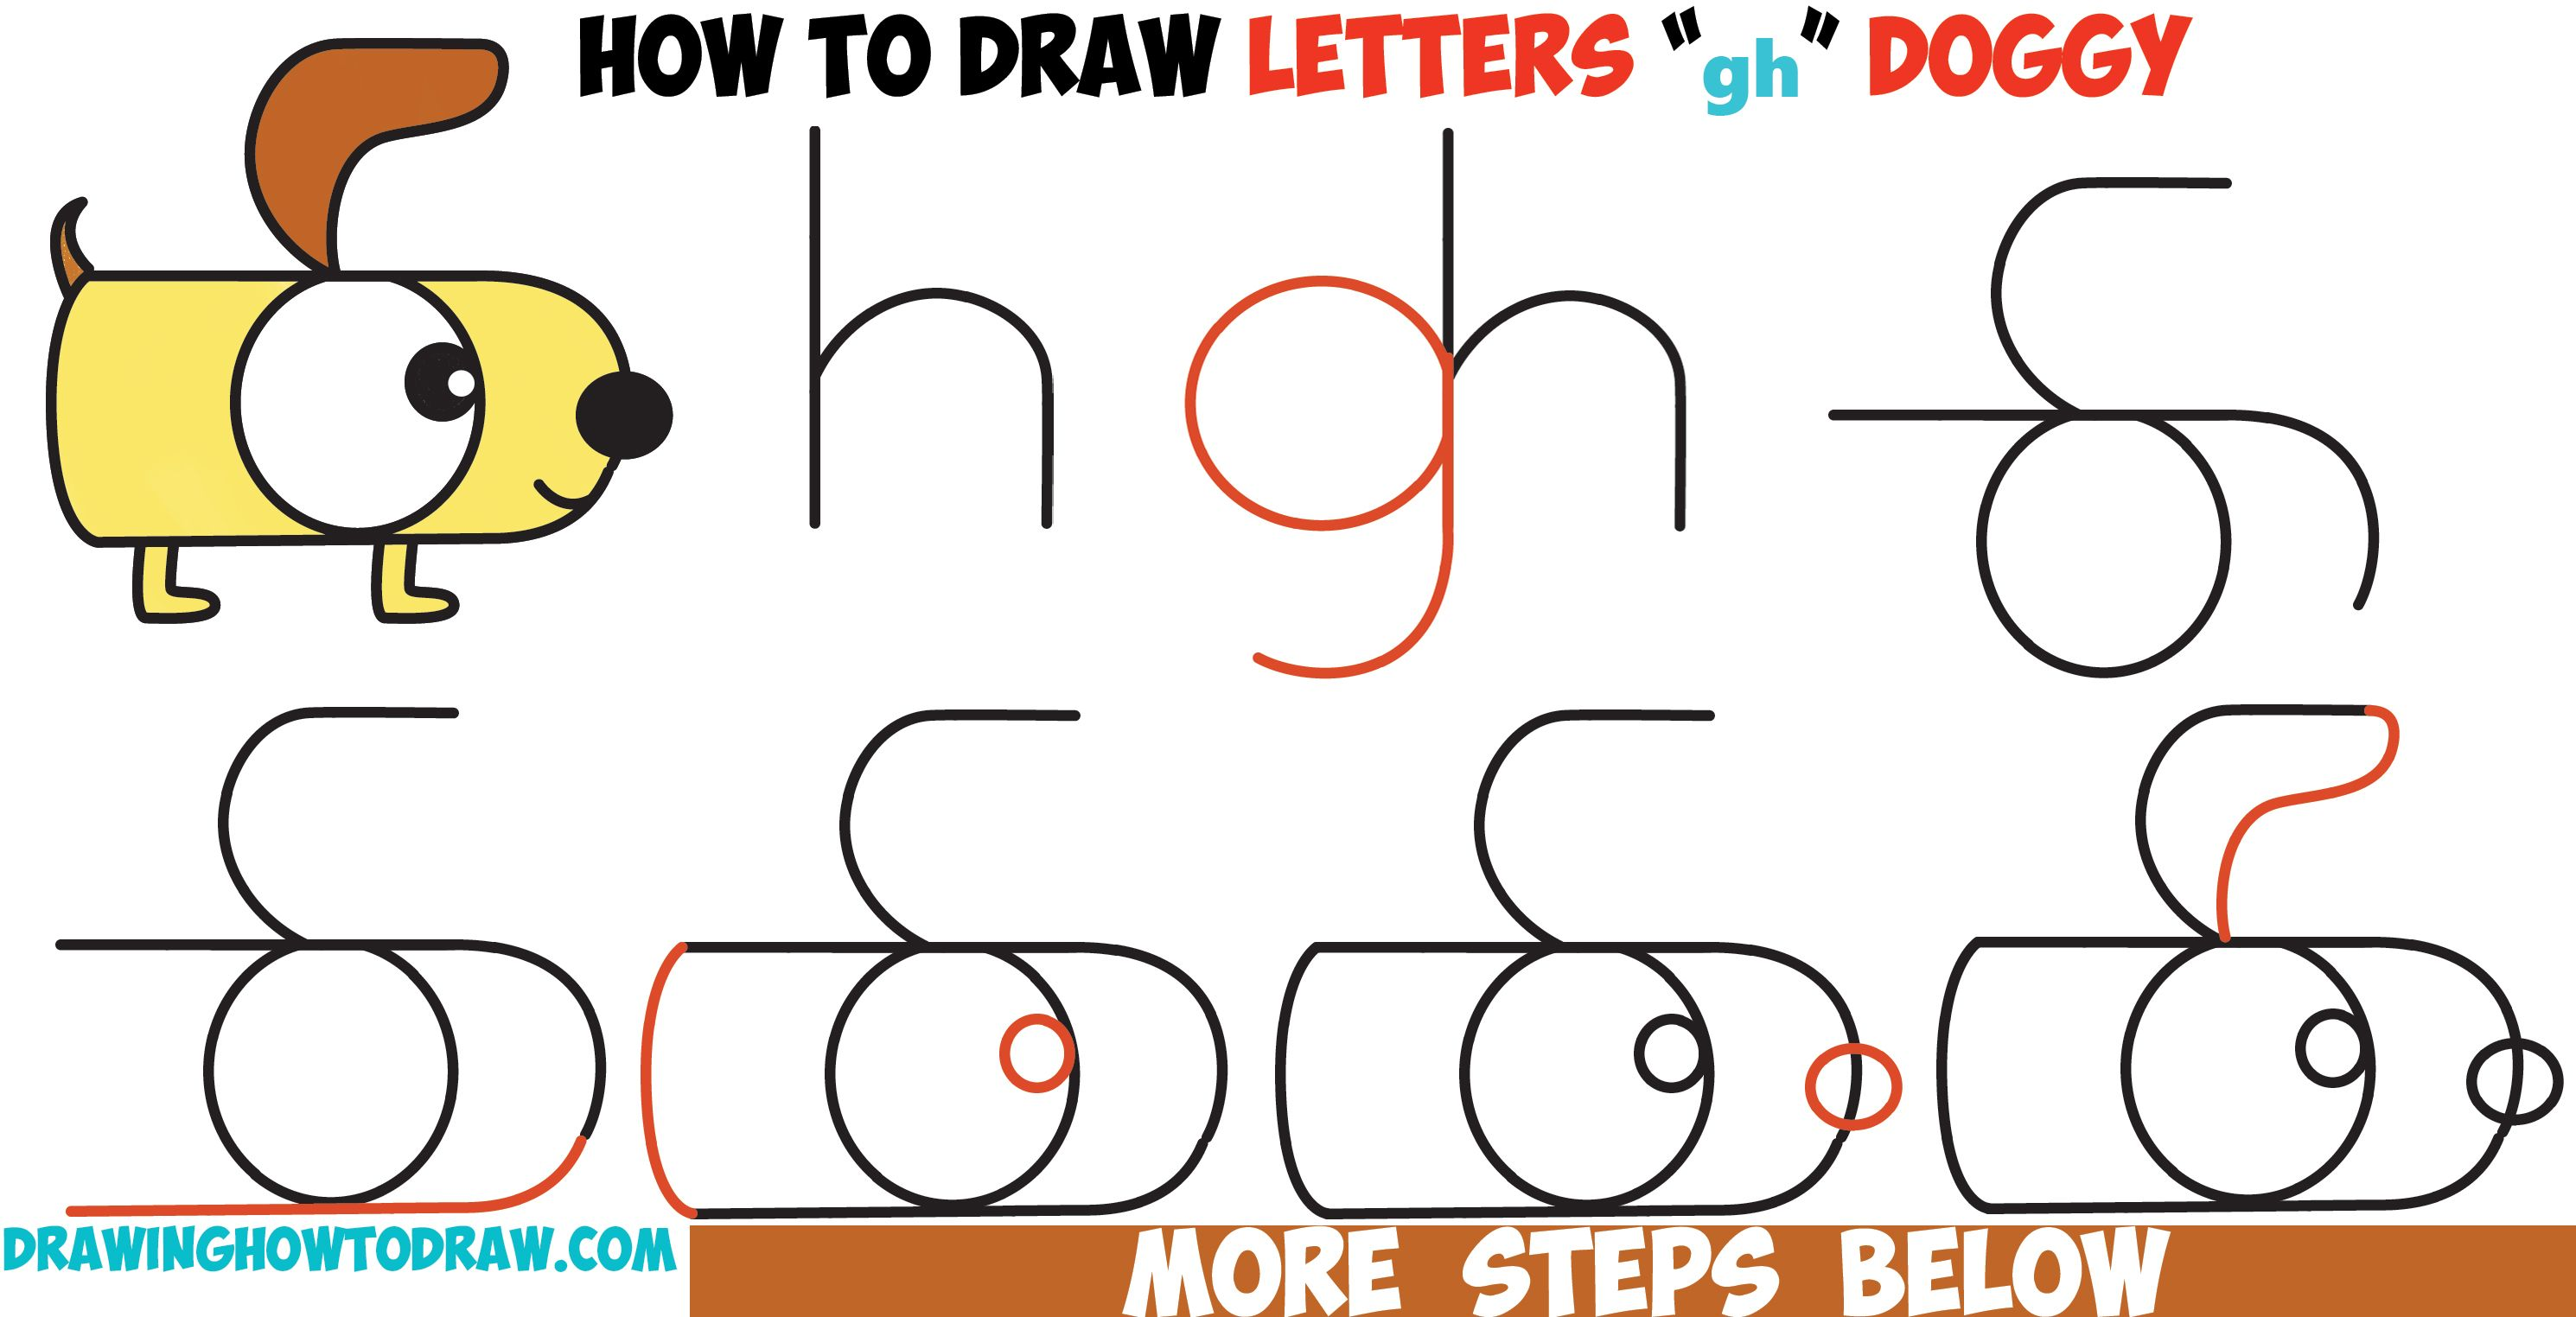 Uncategorized Dogs To Draw Step By Step how to draw a cartoon dog from letters g and h easy step by drawing tutorial for kids t